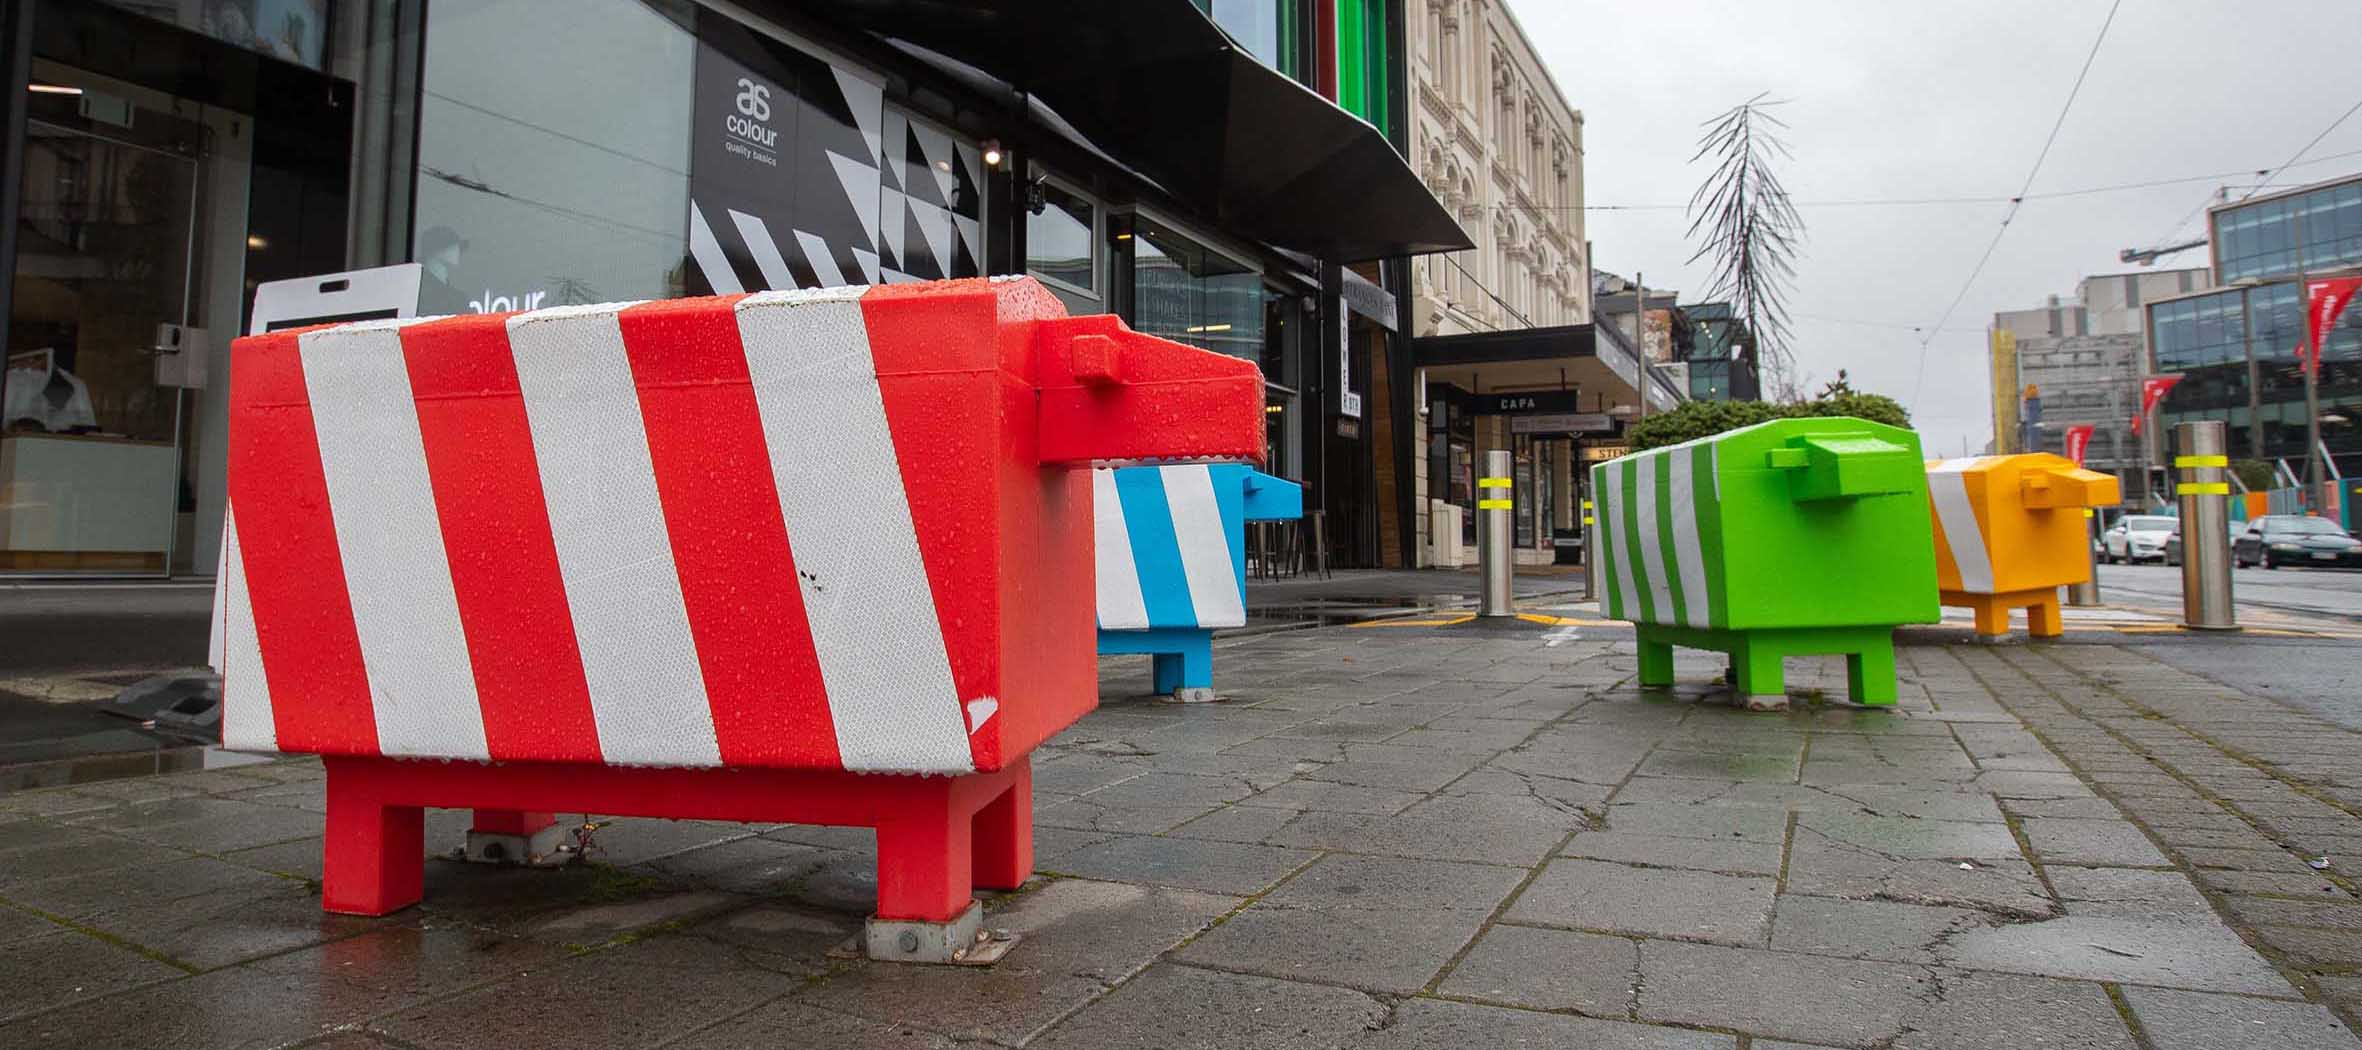 Colourful traffic bollards shaped as sheep